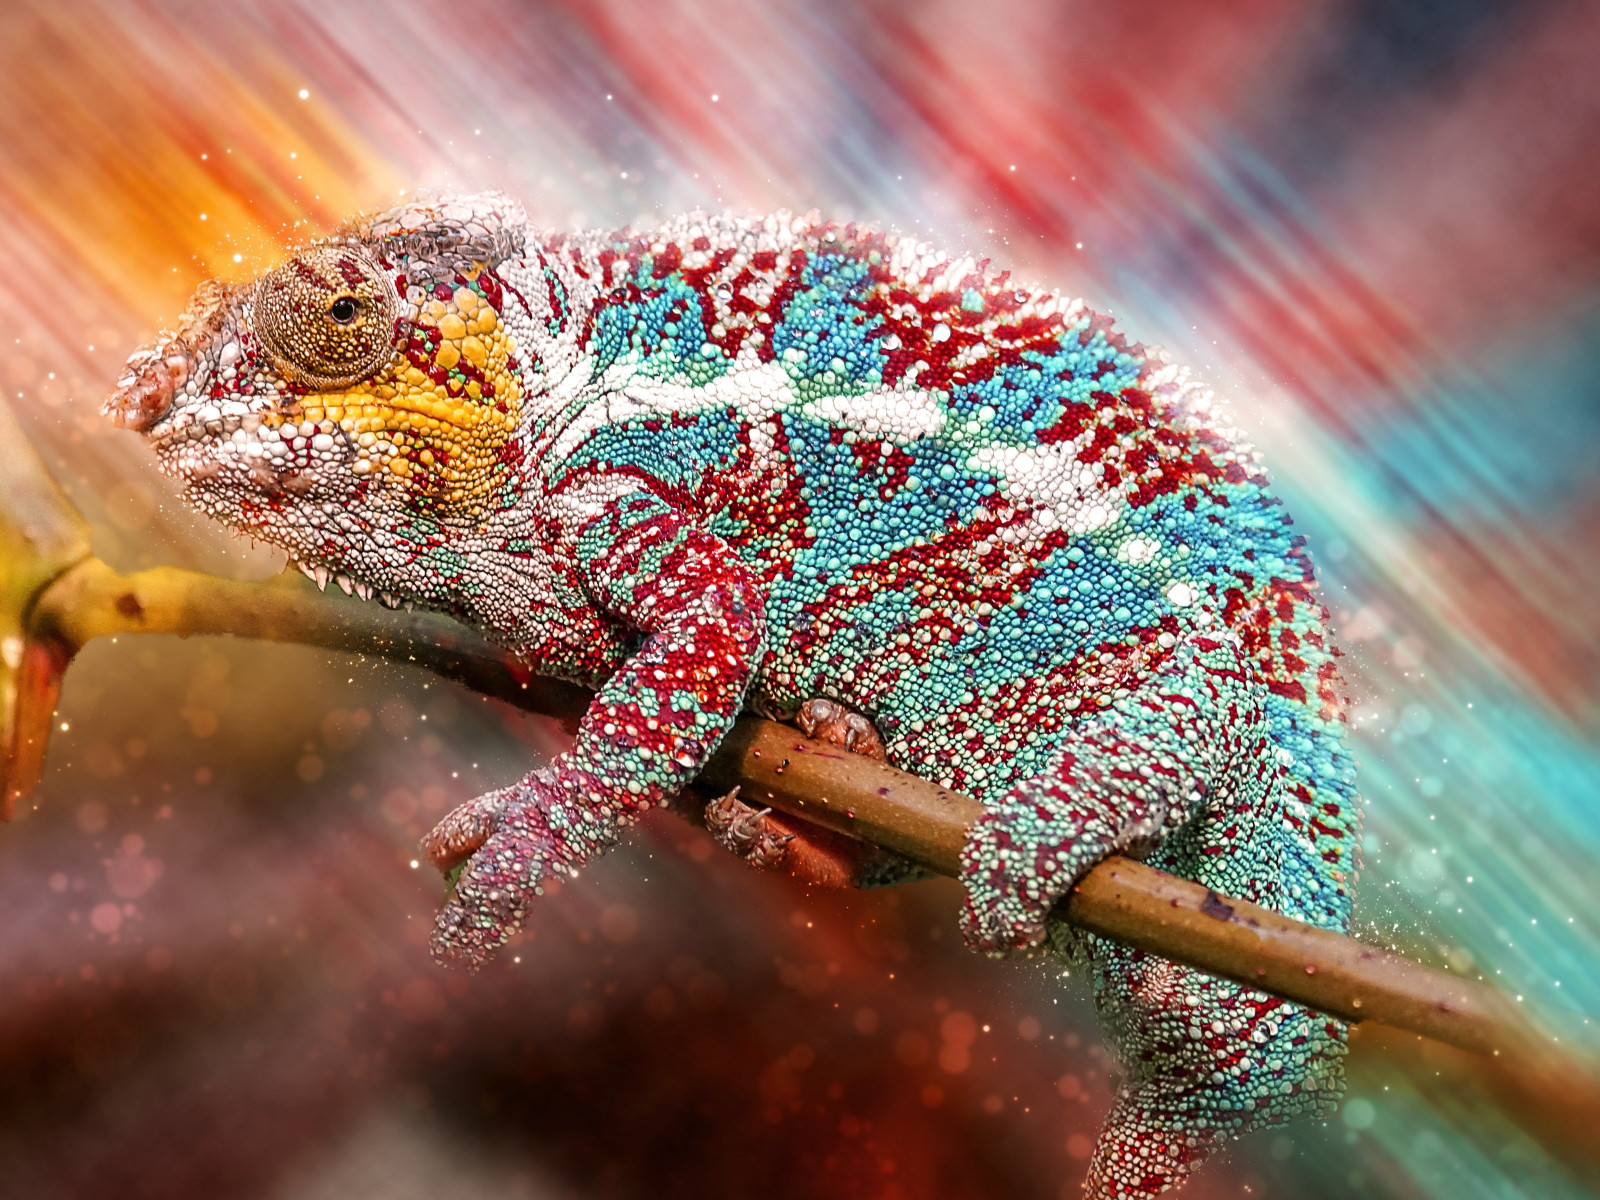 Panther chameleon | 1600x1200 wallpaper